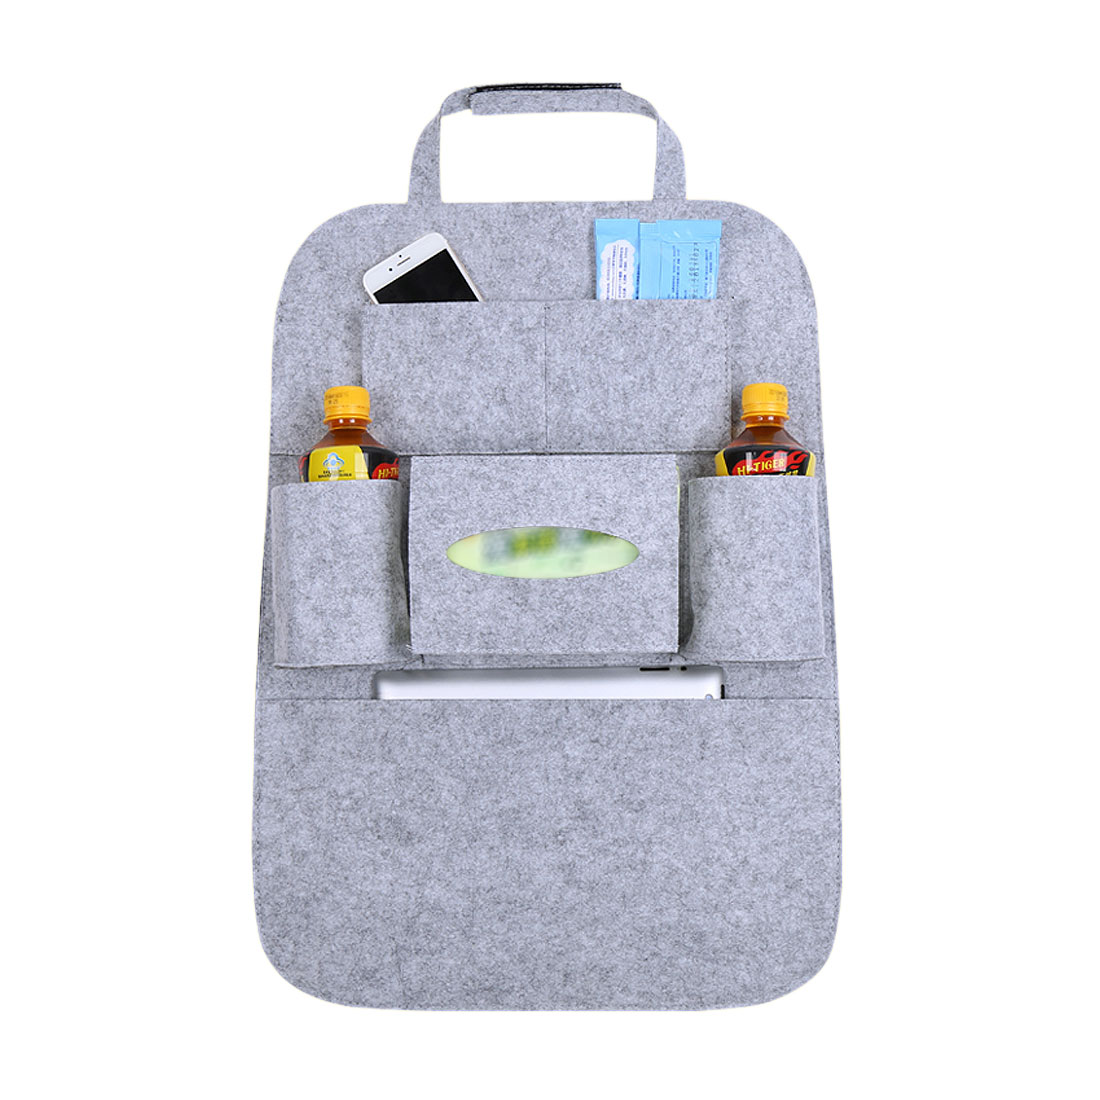 Gray Multi-Pocket Storage Bag Car Vehicle Seat Back Hanger Holder Organizer